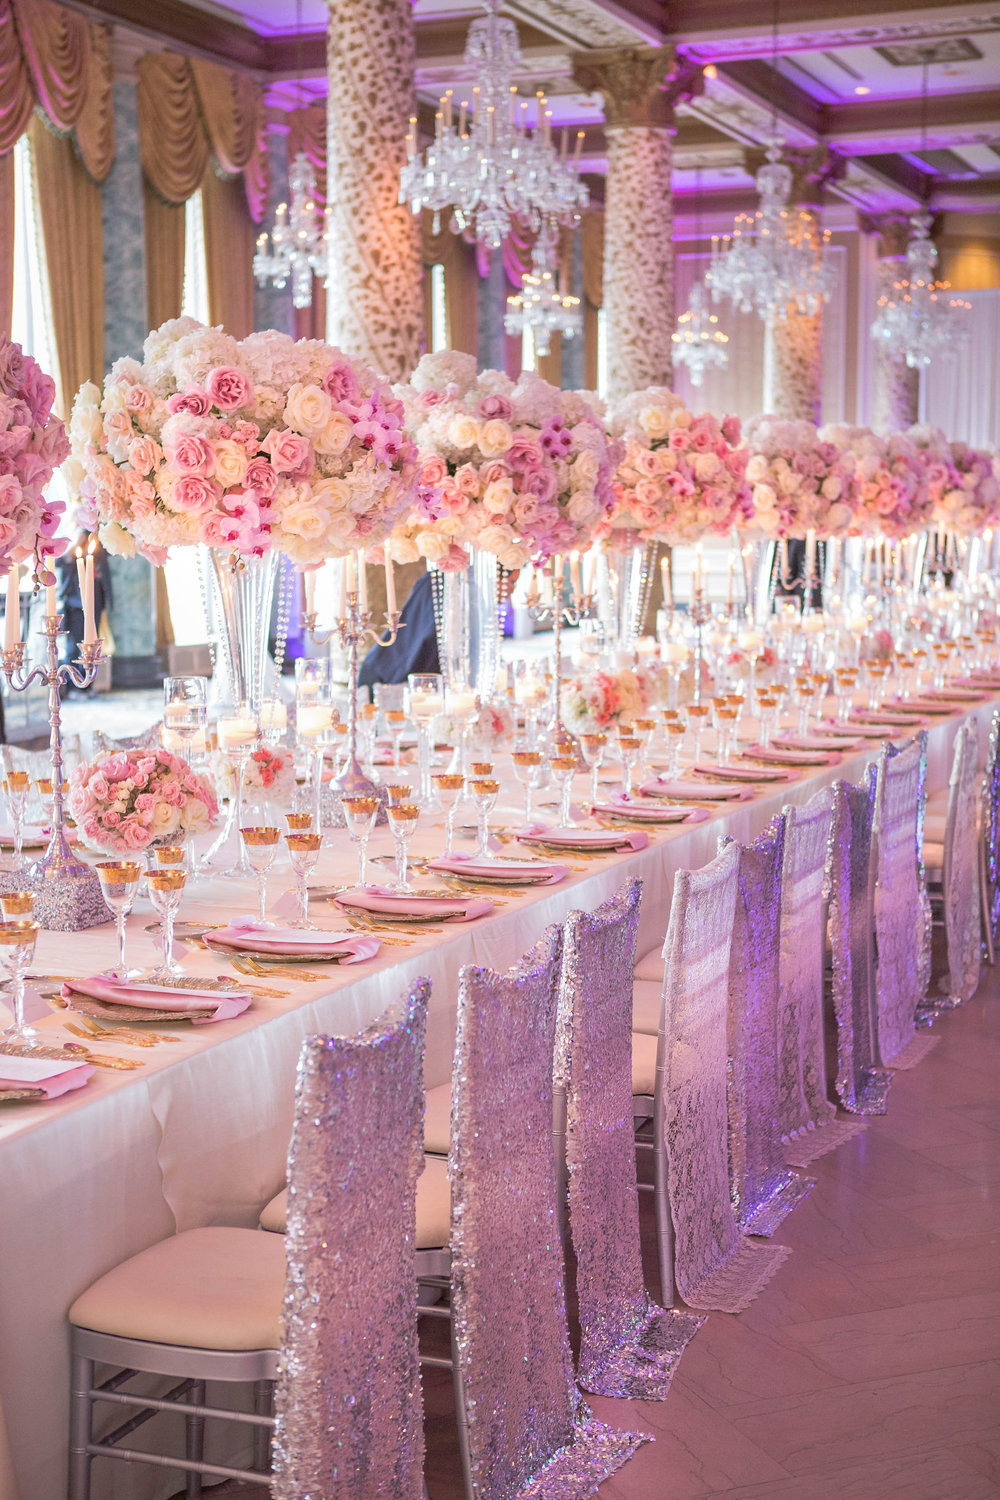 Wedding Table Decorations Inspirational Wedding Ideas Long Reception Tables Belle the Magazine Of Delightful 41 Ideas Wedding Table Decorations